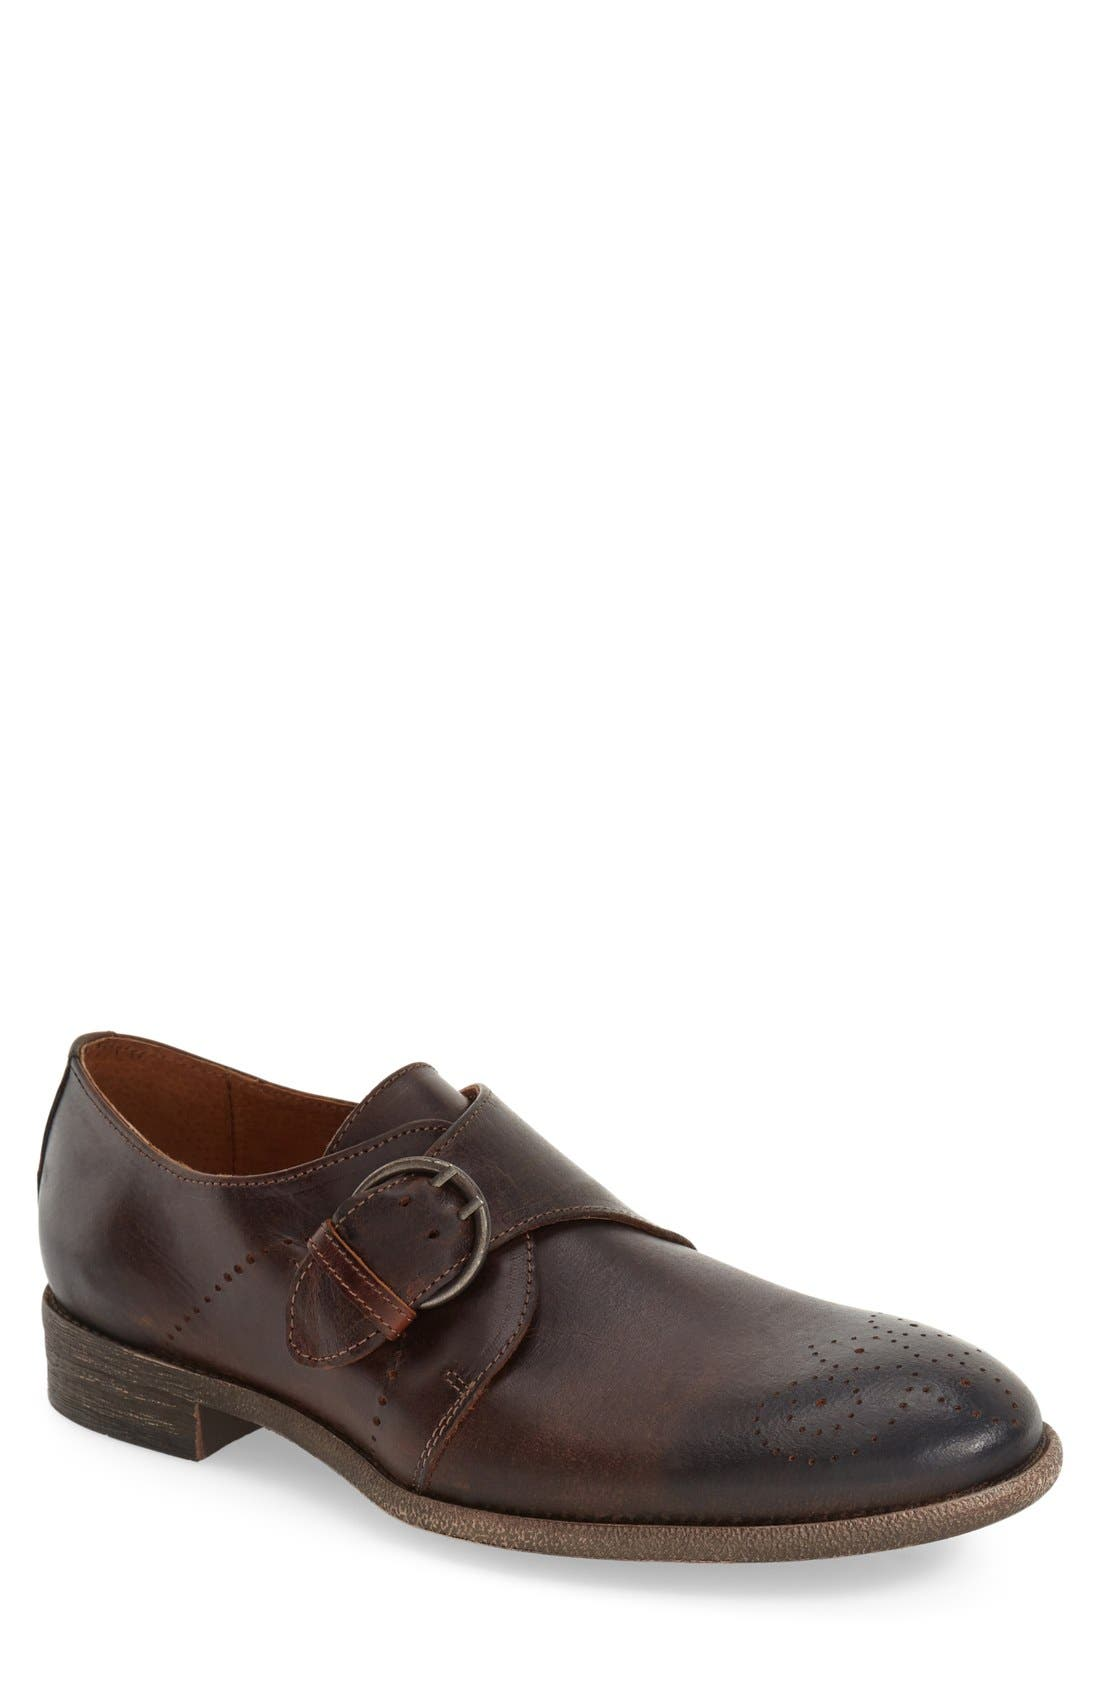 'Montana' Monk Strap Shoe,                             Main thumbnail 1, color,                             201